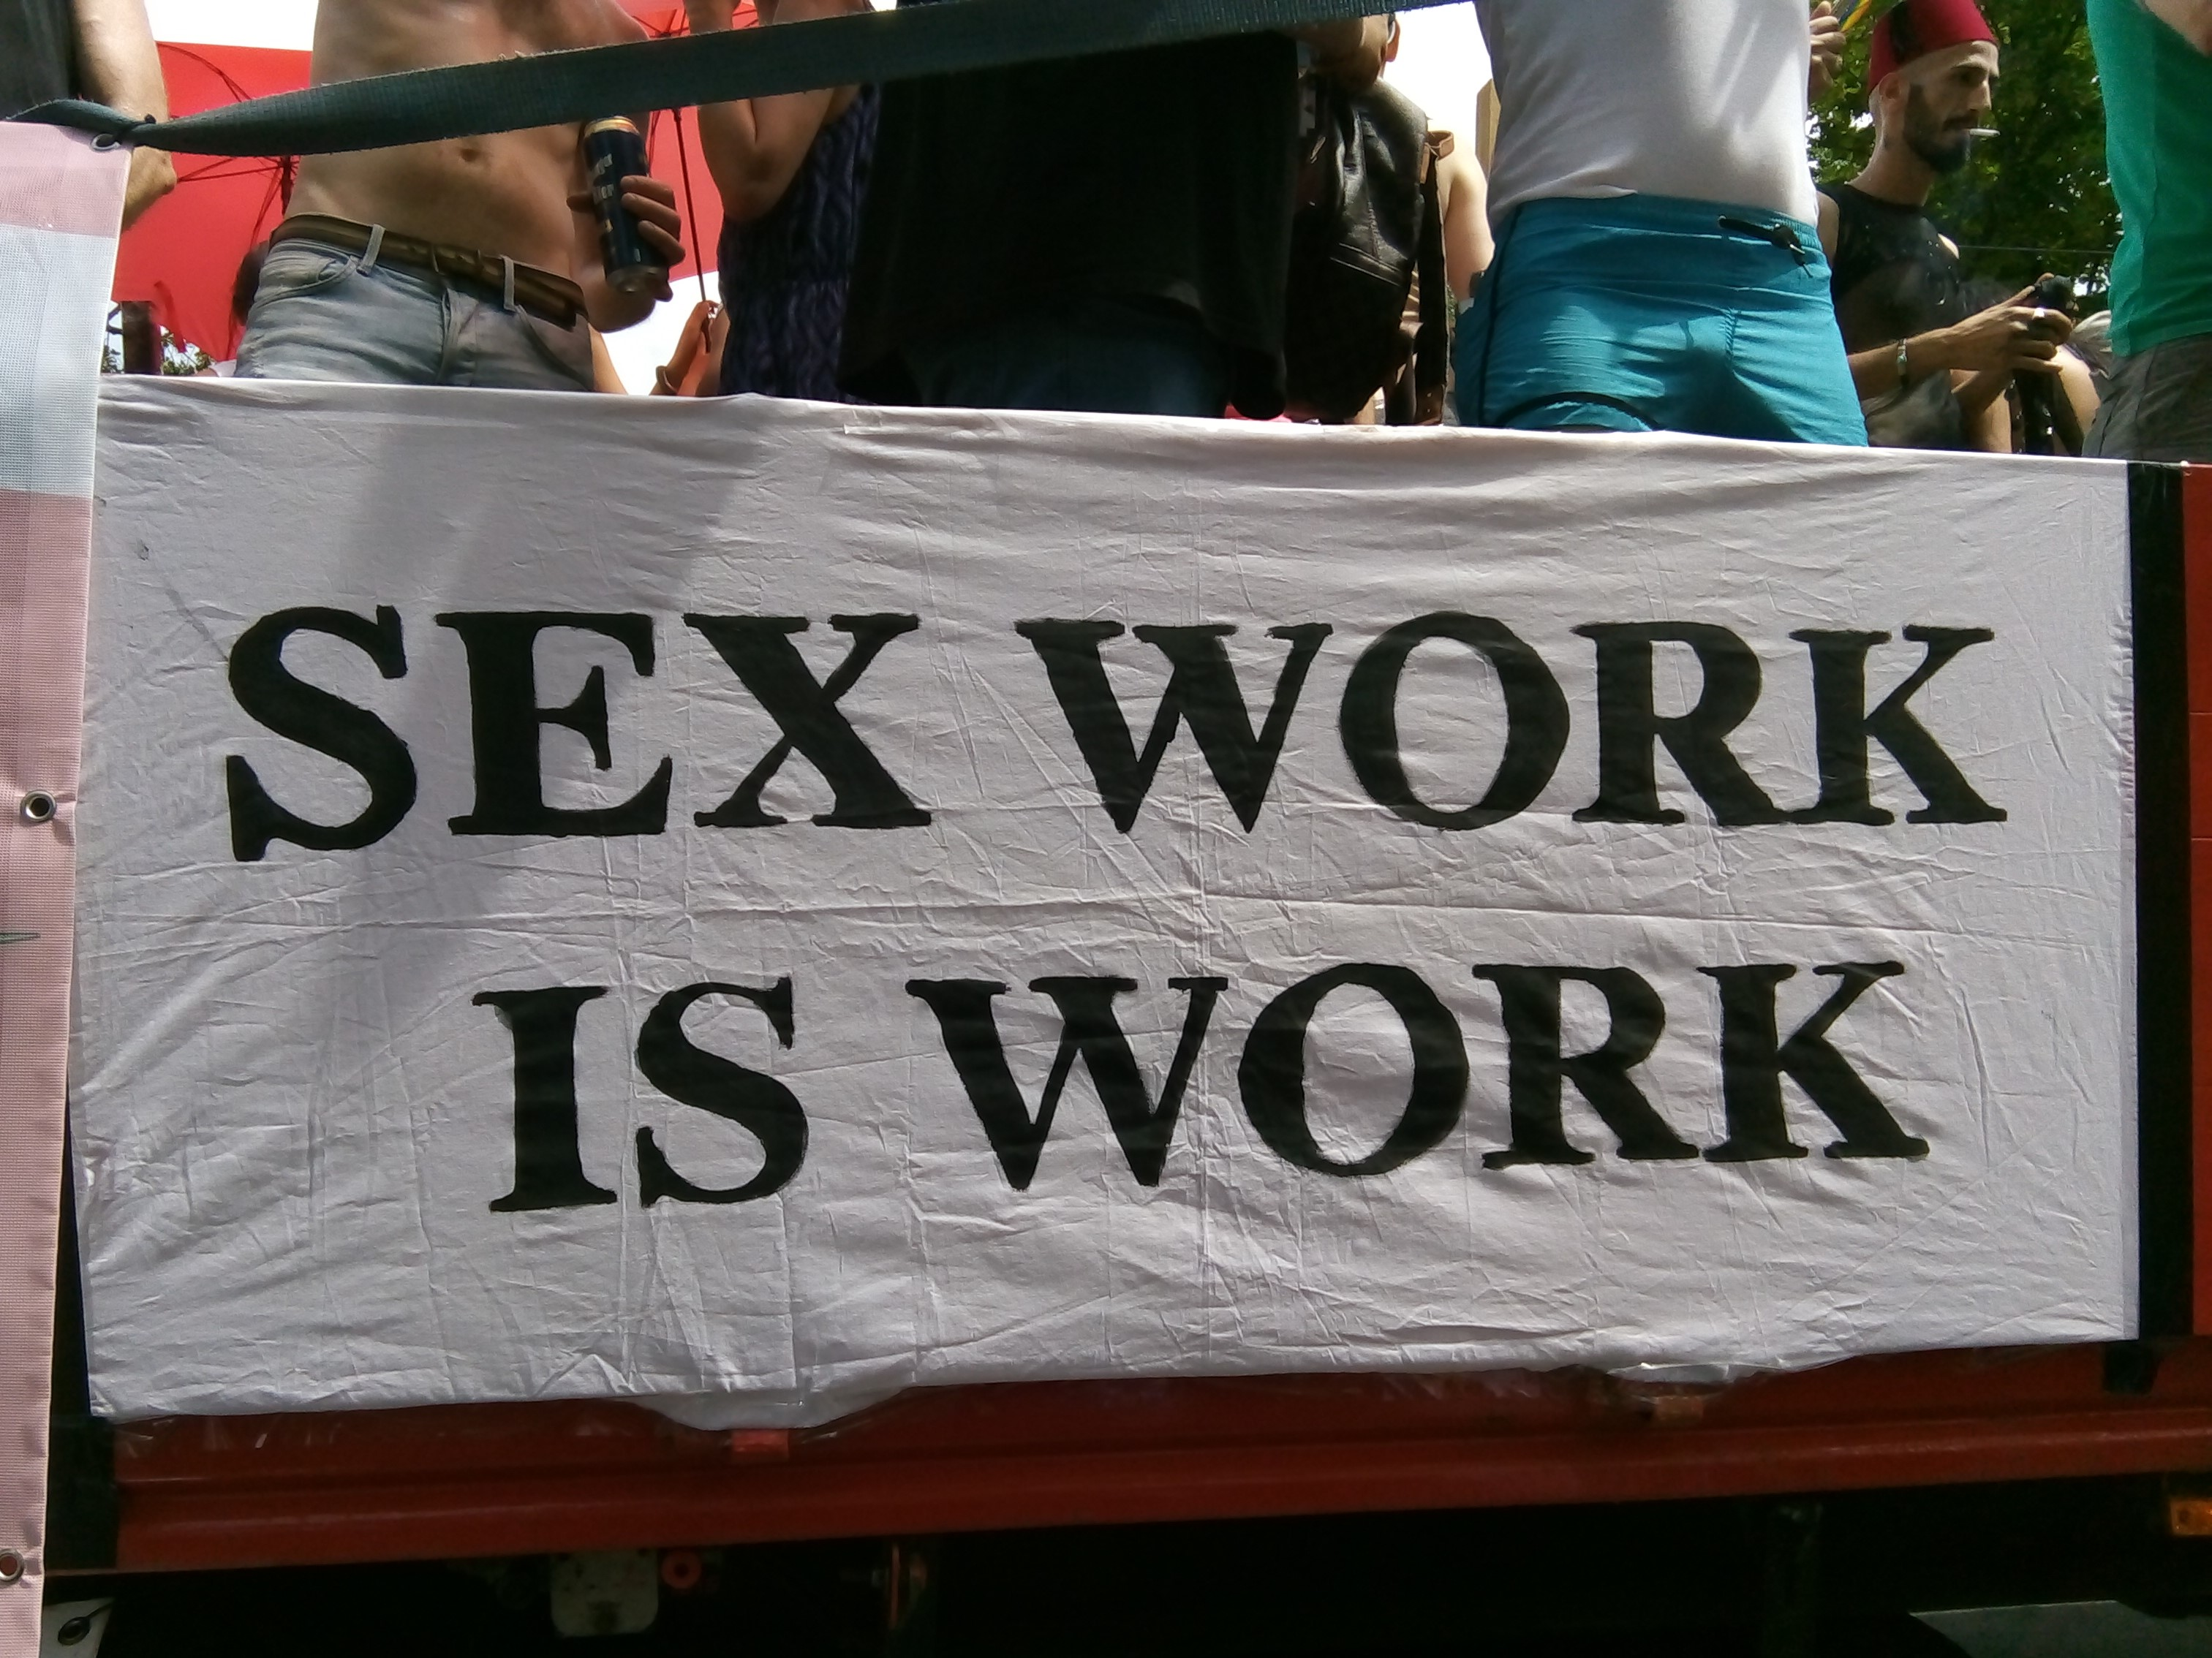 I, the copyright holder of this work, hereby publish it under the following license: English Sex work is work